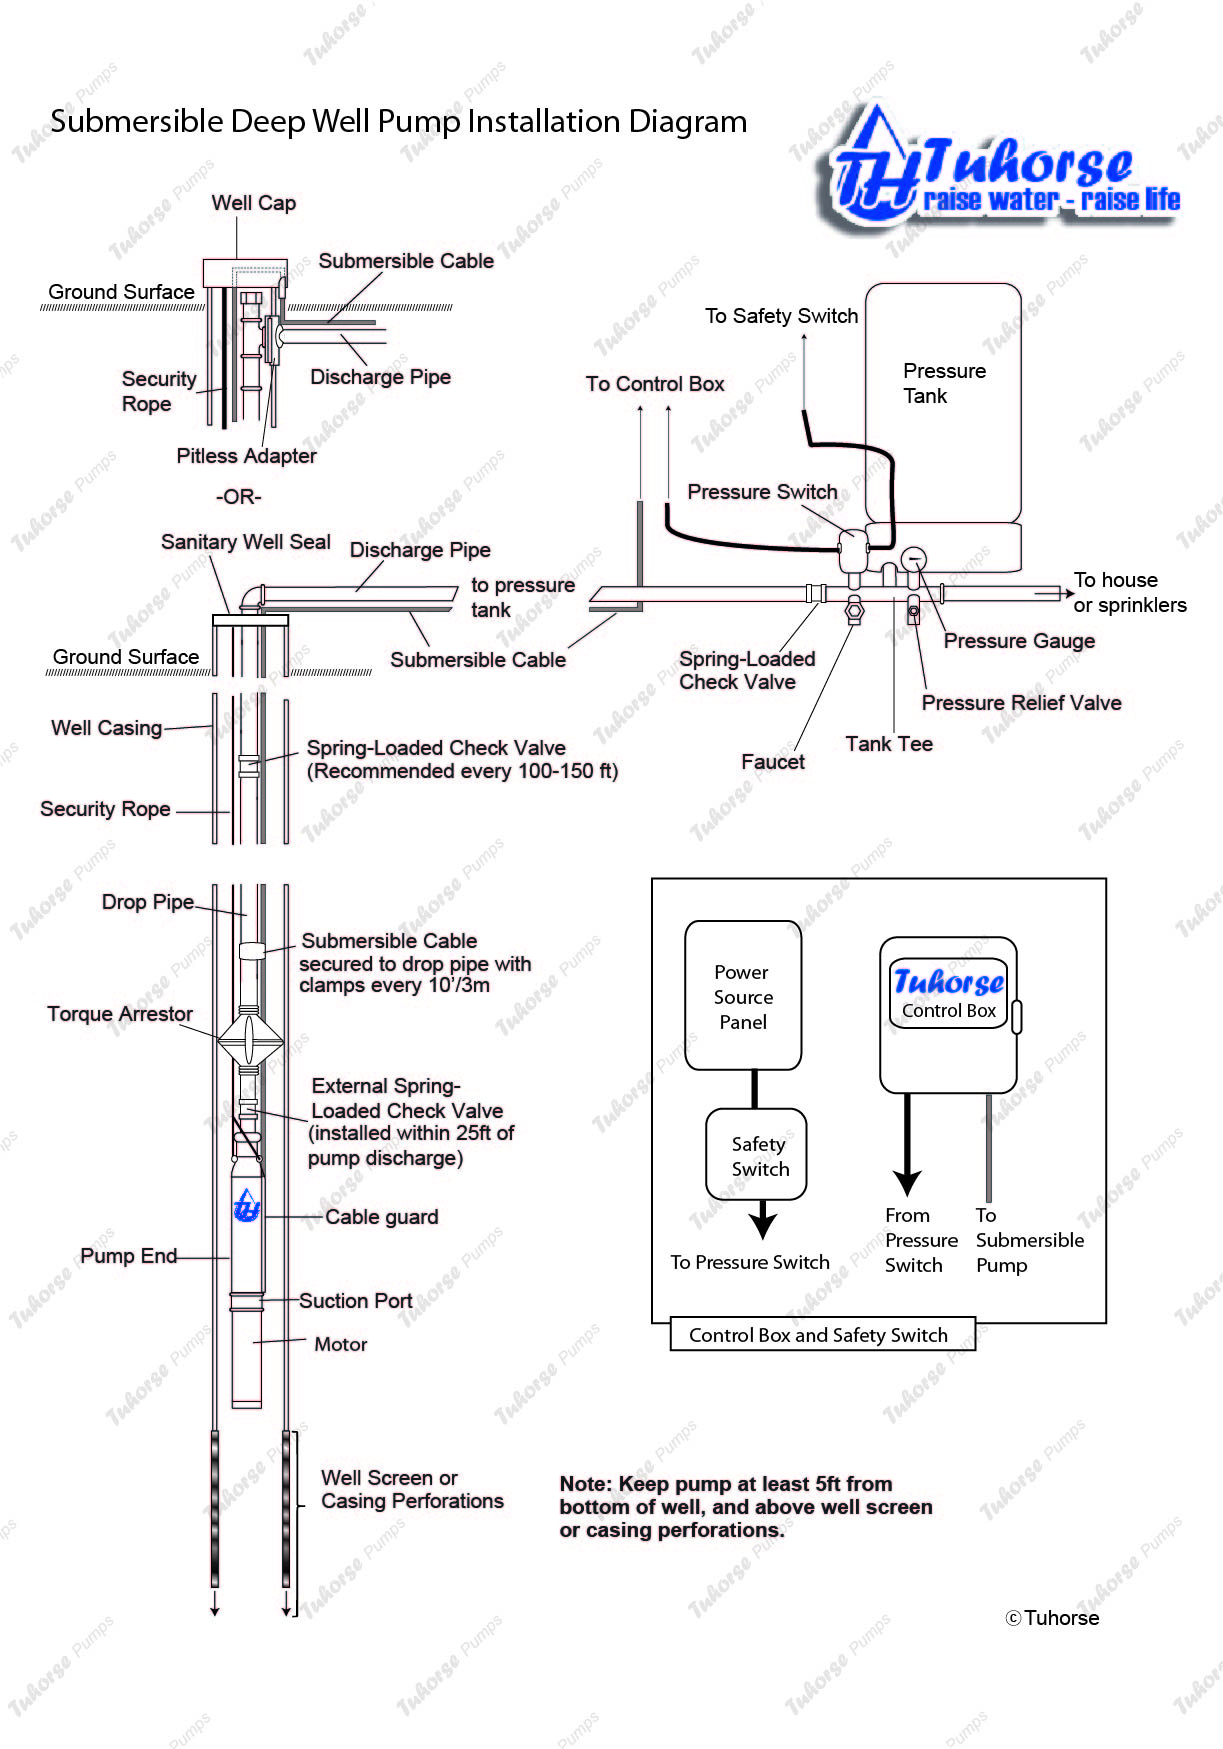 watermarkedinstallationdiagram4 pump installation water well pump wiring diagram at bayanpartner.co